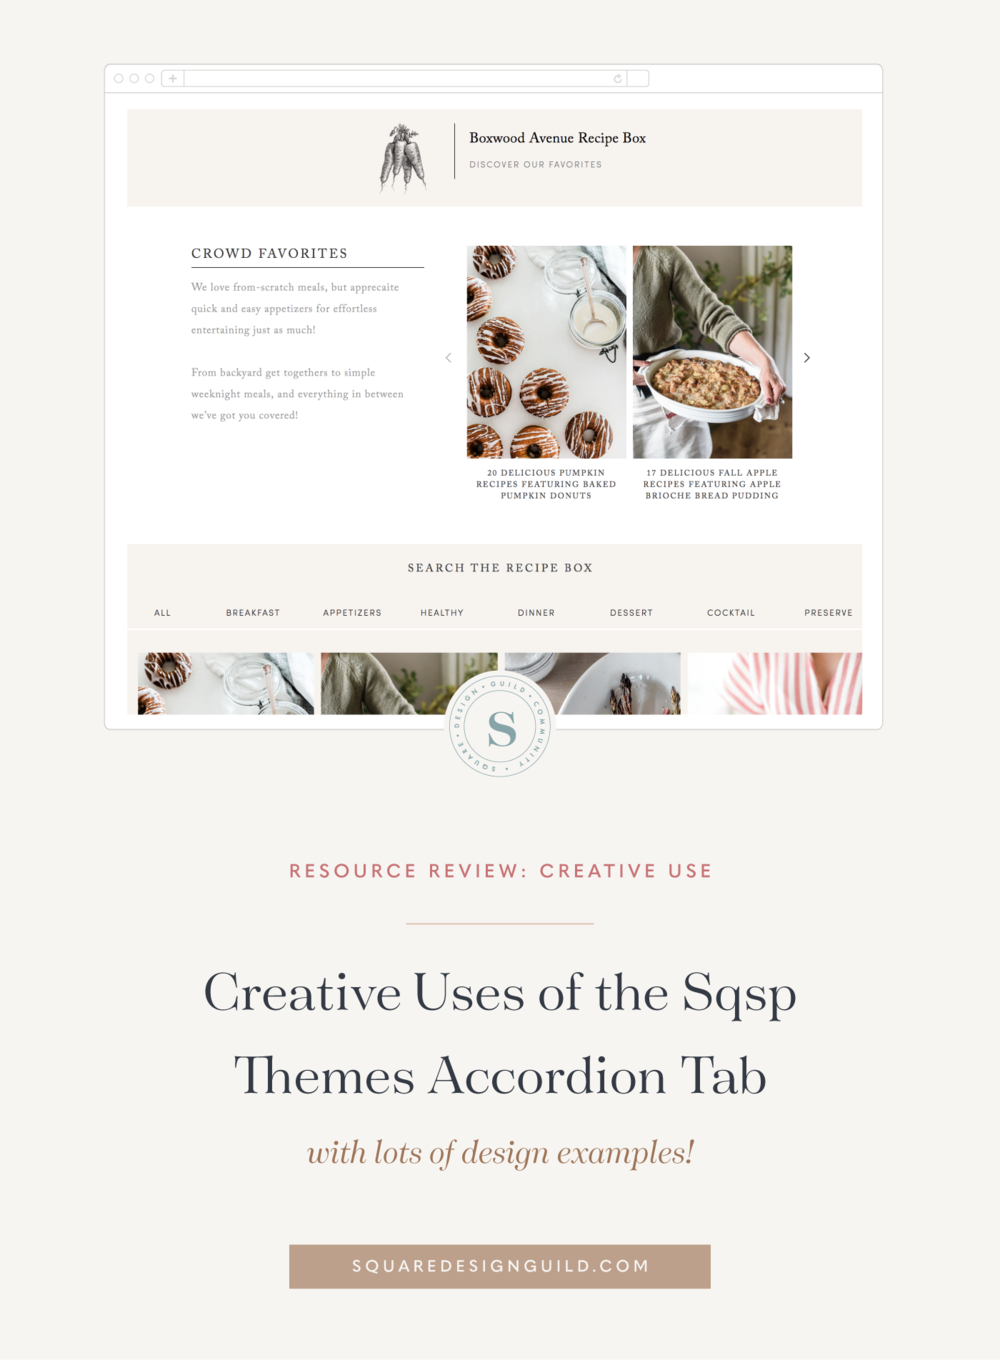 Creative Uses of the Sqsp Themes Accordion Tab.png